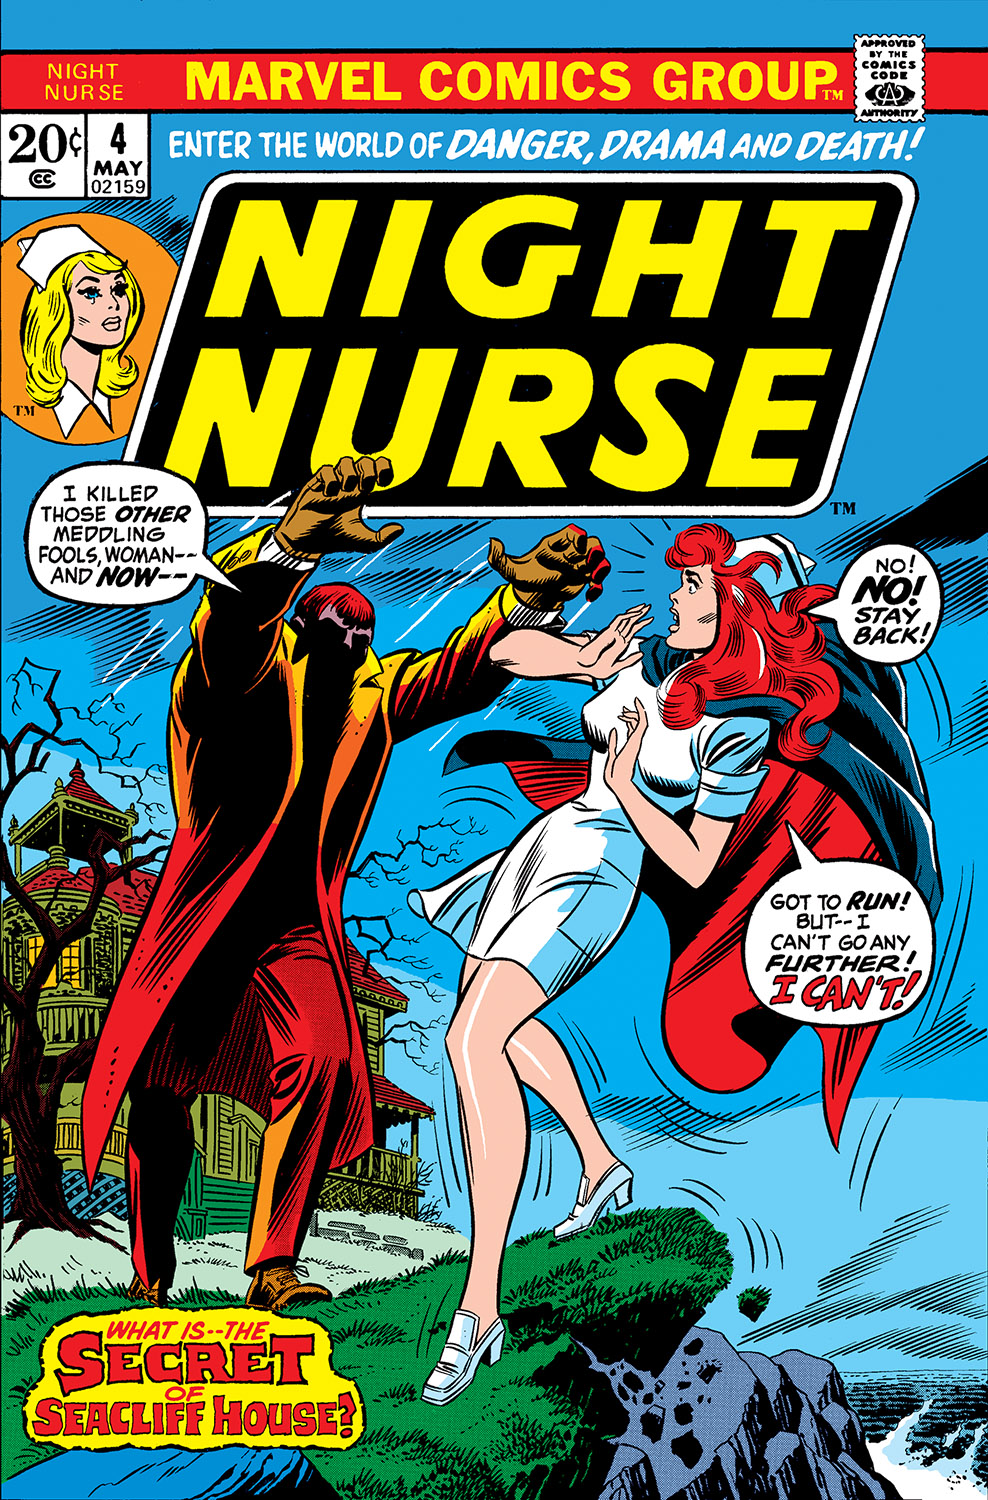 Night Nurse (1972) #4